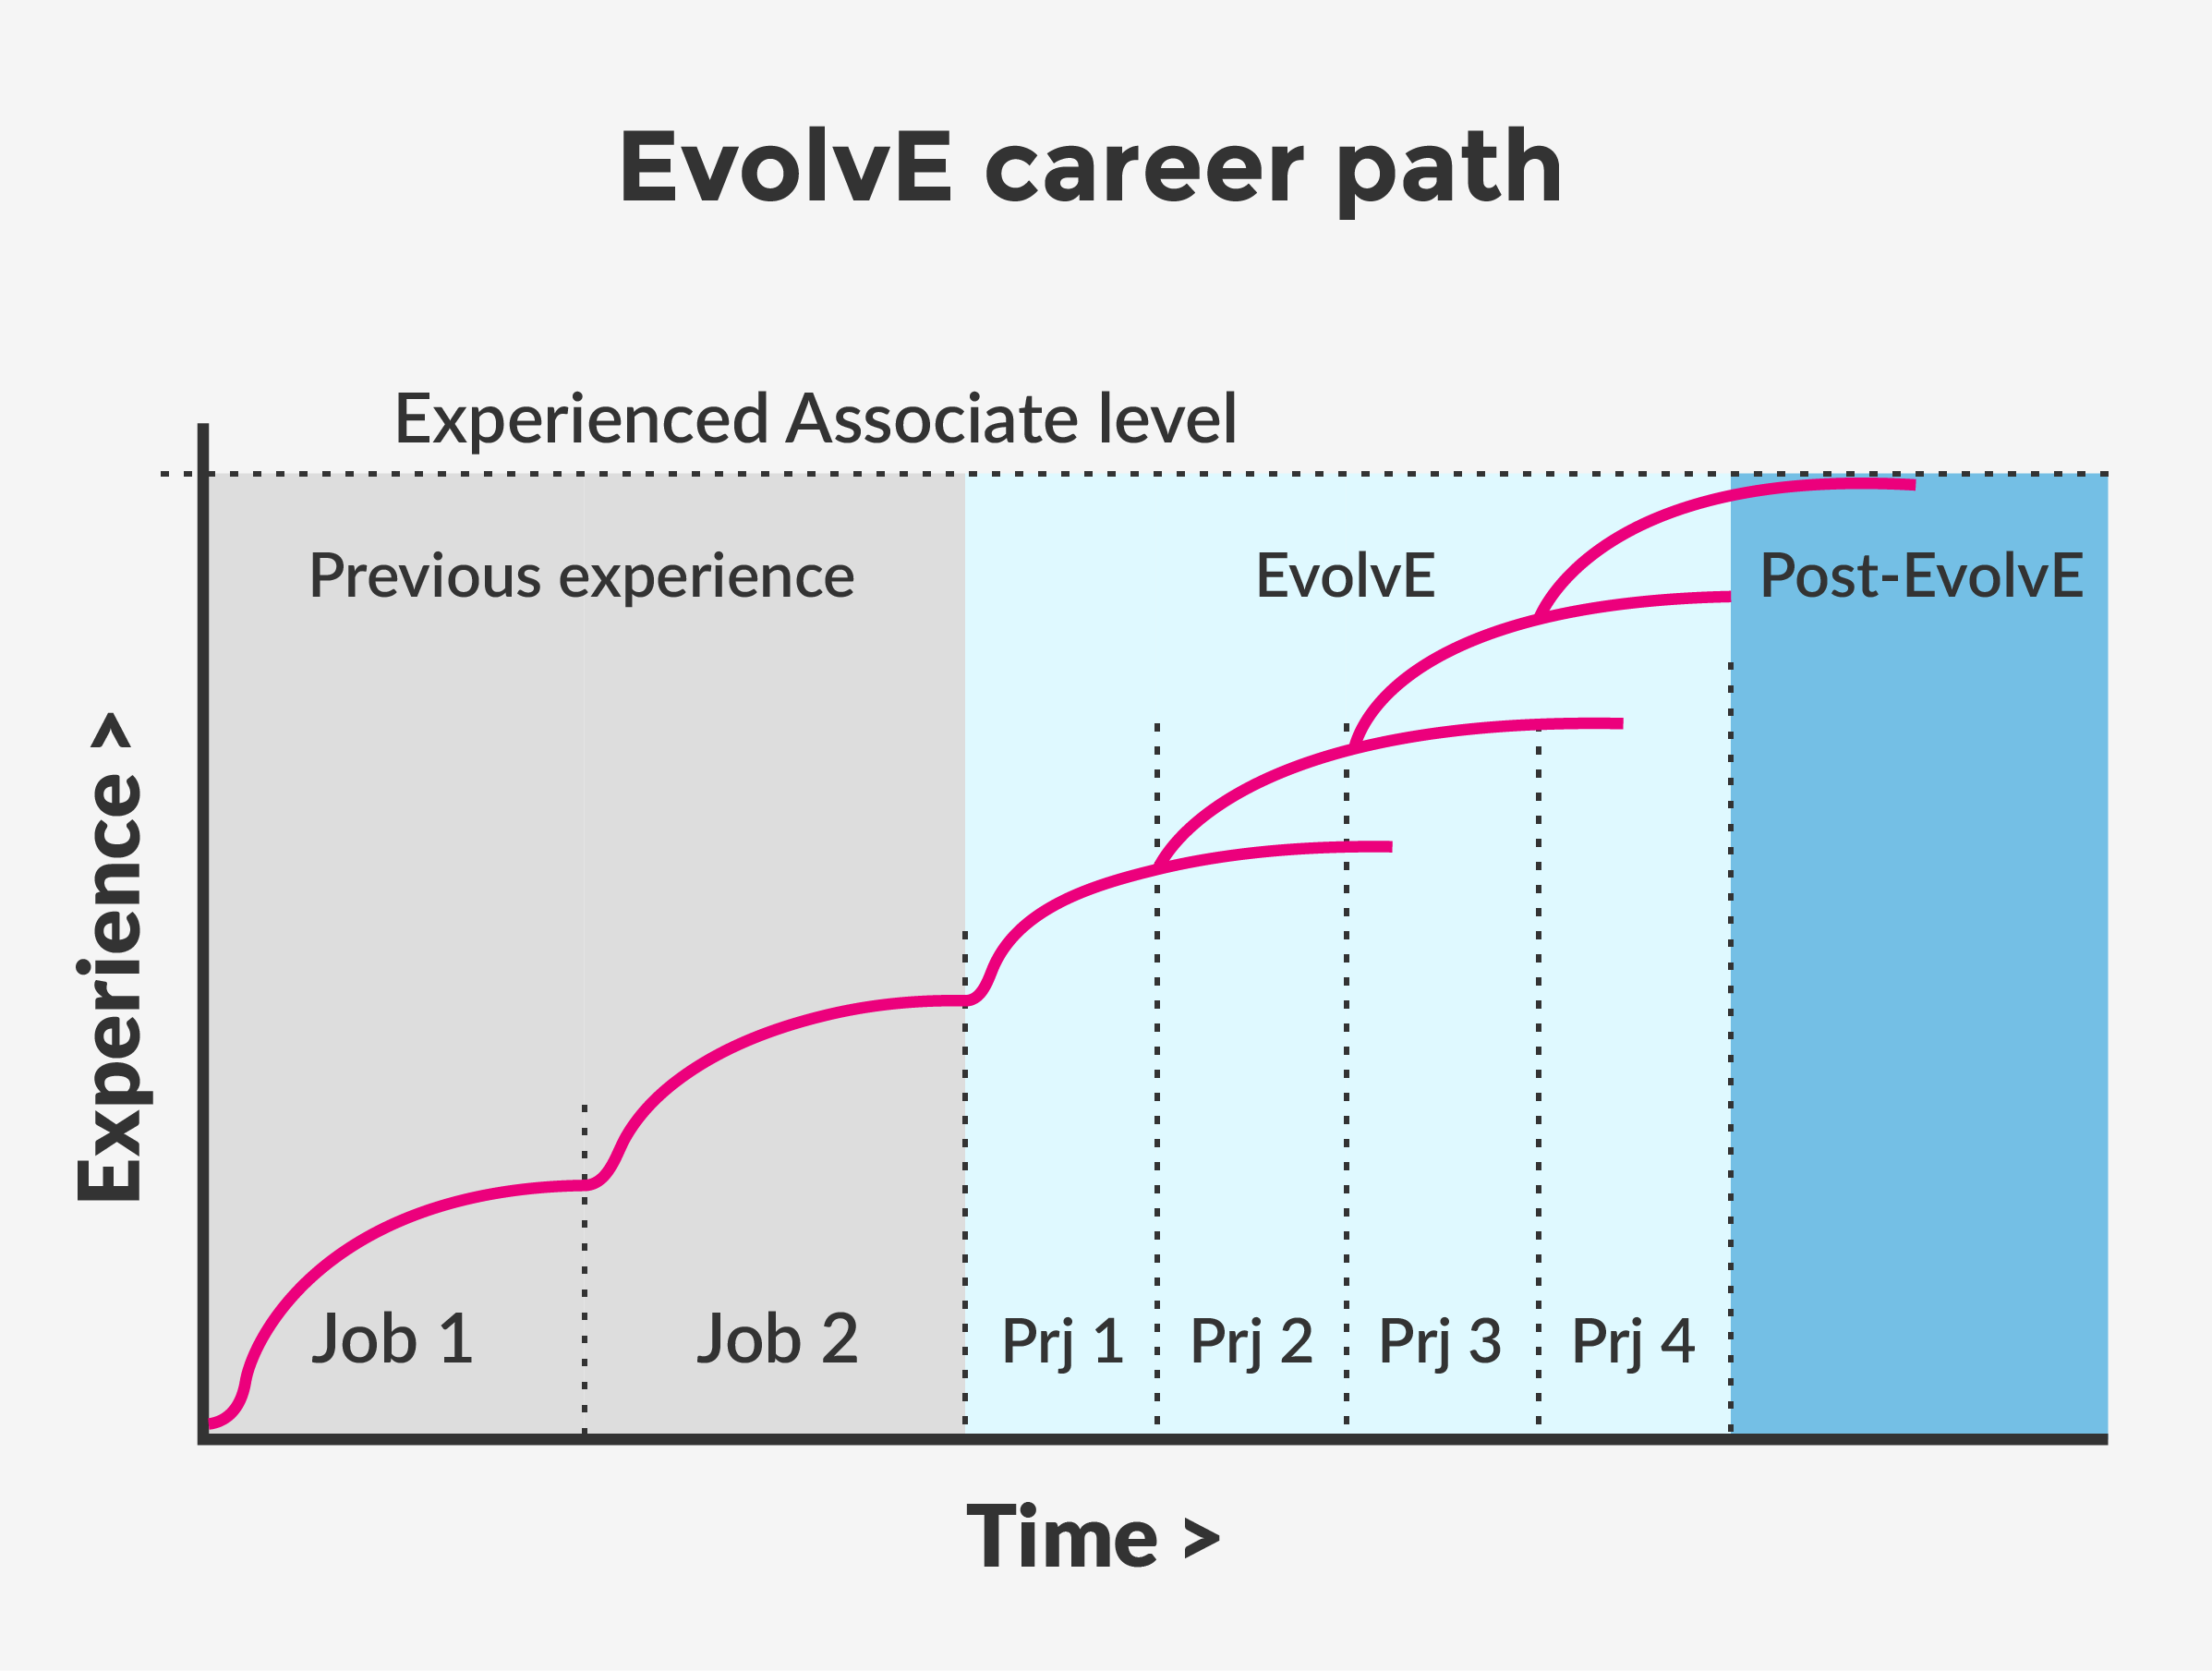 Equal experts evolve career path only